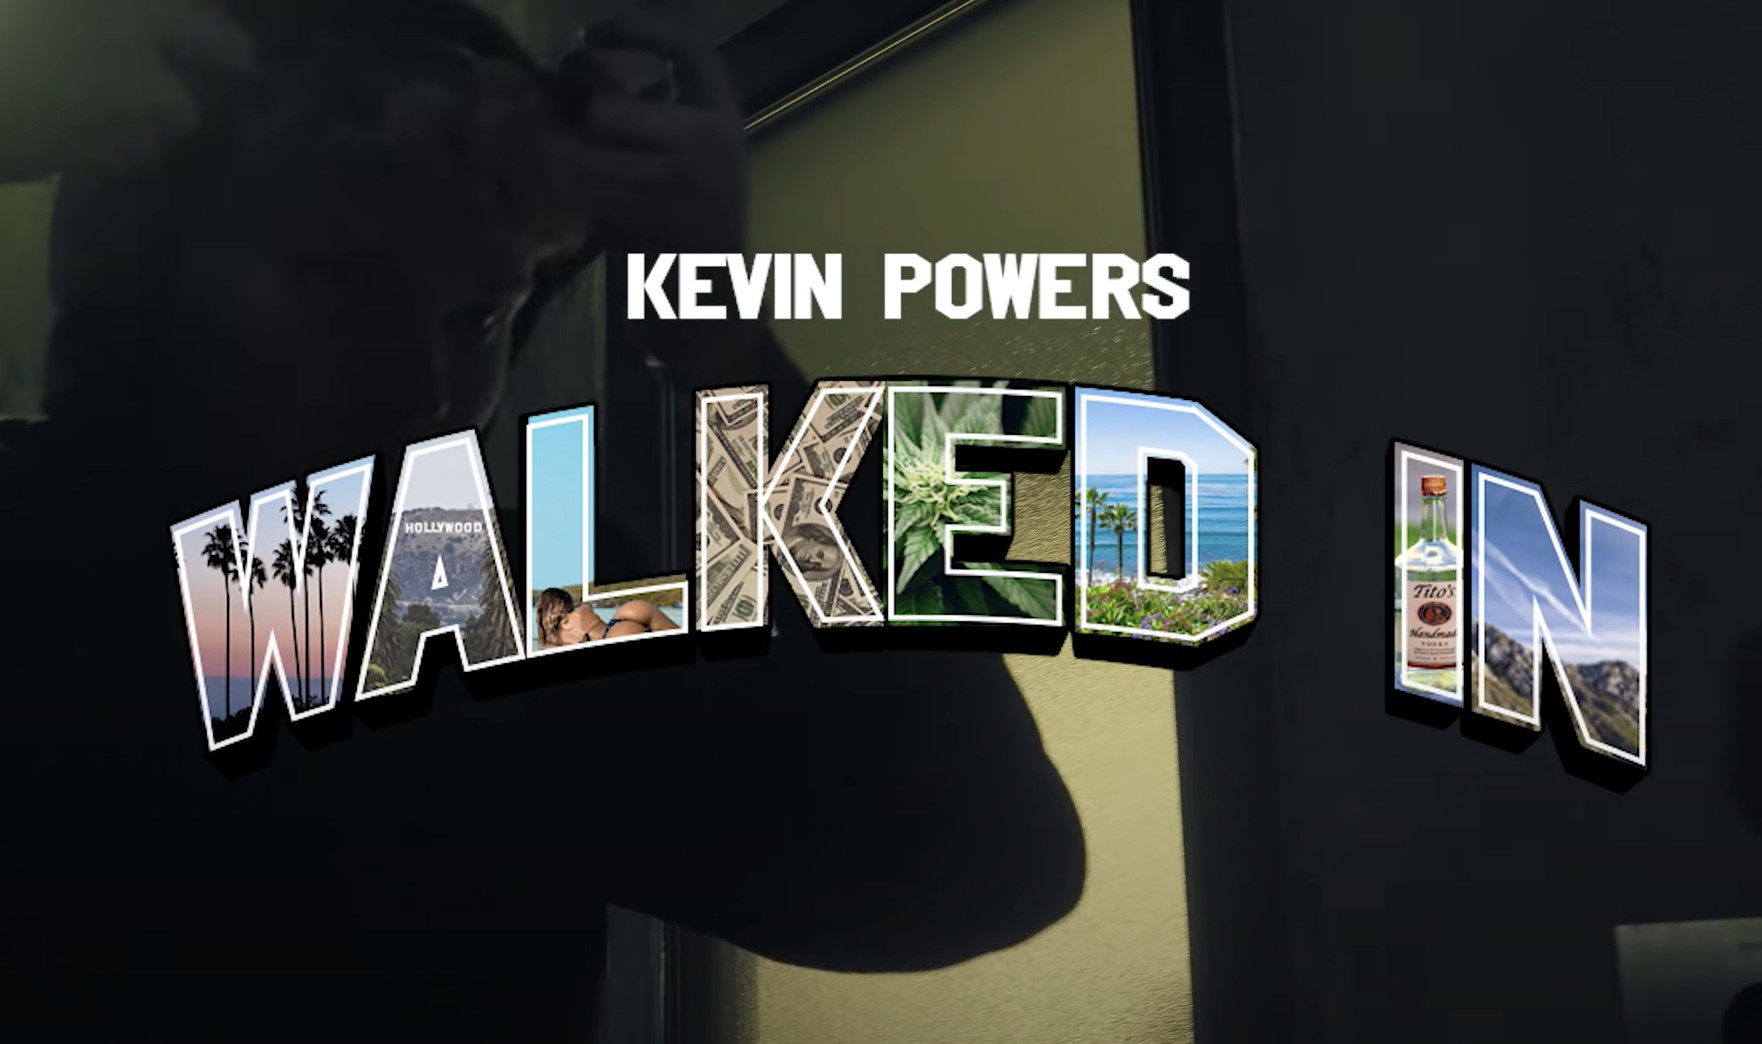 Walked In – [Kevin Powers]